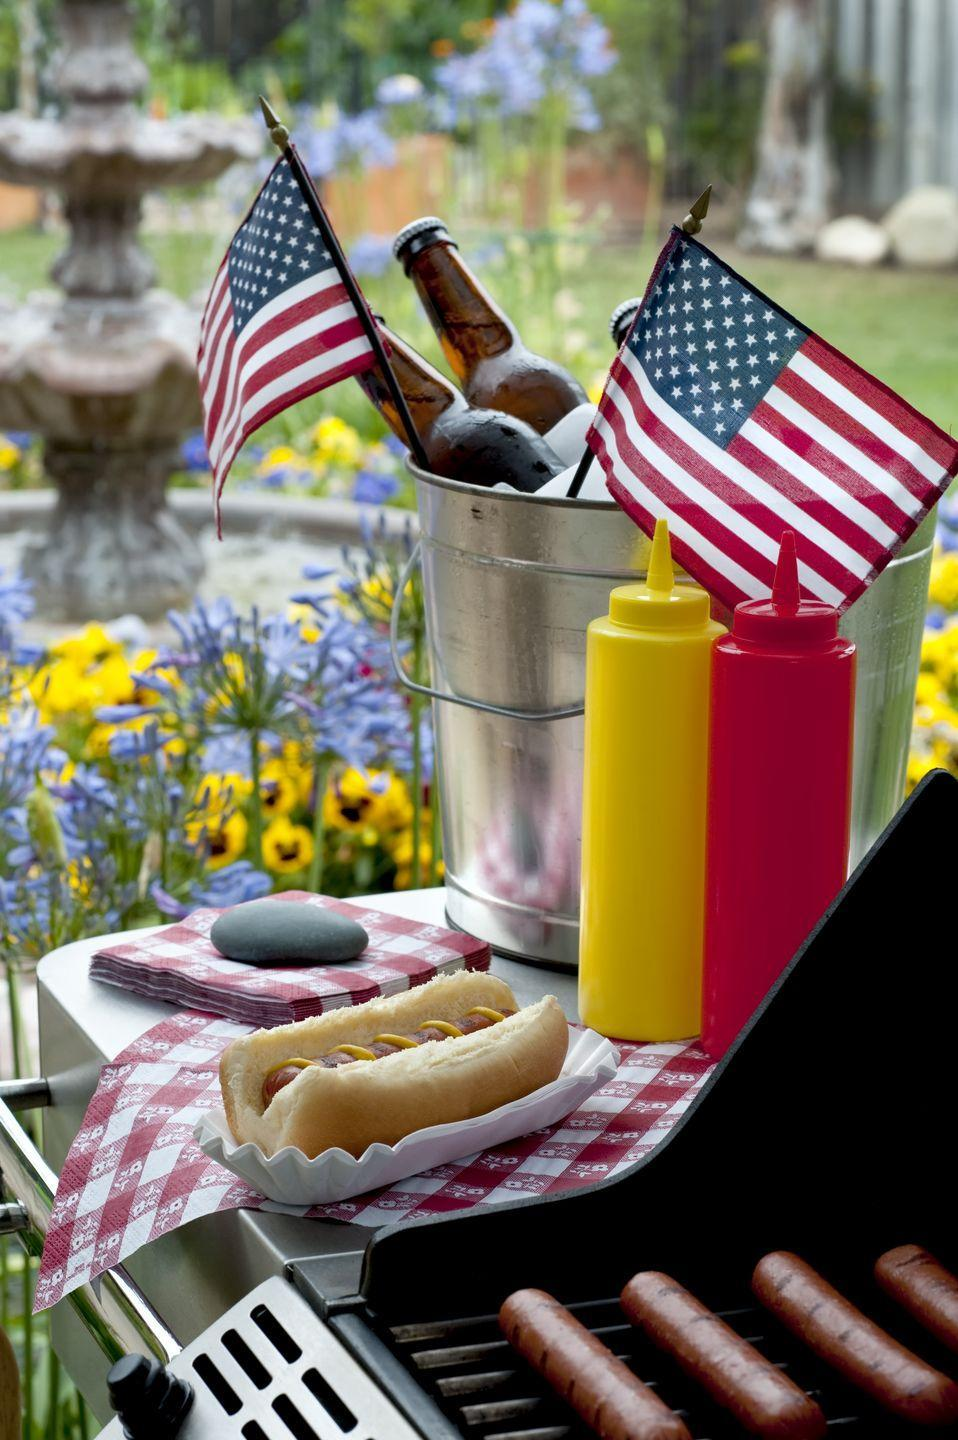 """<p>Fire up the grill for some great eats! Hot dogs and burgers are essential, of course, but don't forget the <a href=""""https://www.goodhousekeeping.com/food-recipes/easy/g4310/fourth-of-july-appetizers/"""" rel=""""nofollow noopener"""" target=""""_blank"""" data-ylk=""""slk:tasty apps"""" class=""""link rapid-noclick-resp"""">tasty apps</a> (and some <a href=""""https://www.goodhousekeeping.com/food-recipes/g4316/fourth-of-july-drinks/"""" rel=""""nofollow noopener"""" target=""""_blank"""" data-ylk=""""slk:festive drinks"""" class=""""link rapid-noclick-resp"""">festive drinks</a> to cool off in the heat).</p><p><strong>RELATED: </strong><a href=""""https://www.goodhousekeeping.com/holidays/g2069/4th-of-july-recipes/"""" rel=""""nofollow noopener"""" target=""""_blank"""" data-ylk=""""slk:59 Easy 4th of July Recipes Your Family Will Devour"""" class=""""link rapid-noclick-resp"""">59 Easy 4th of July Recipes Your Family Will Devour</a></p>"""